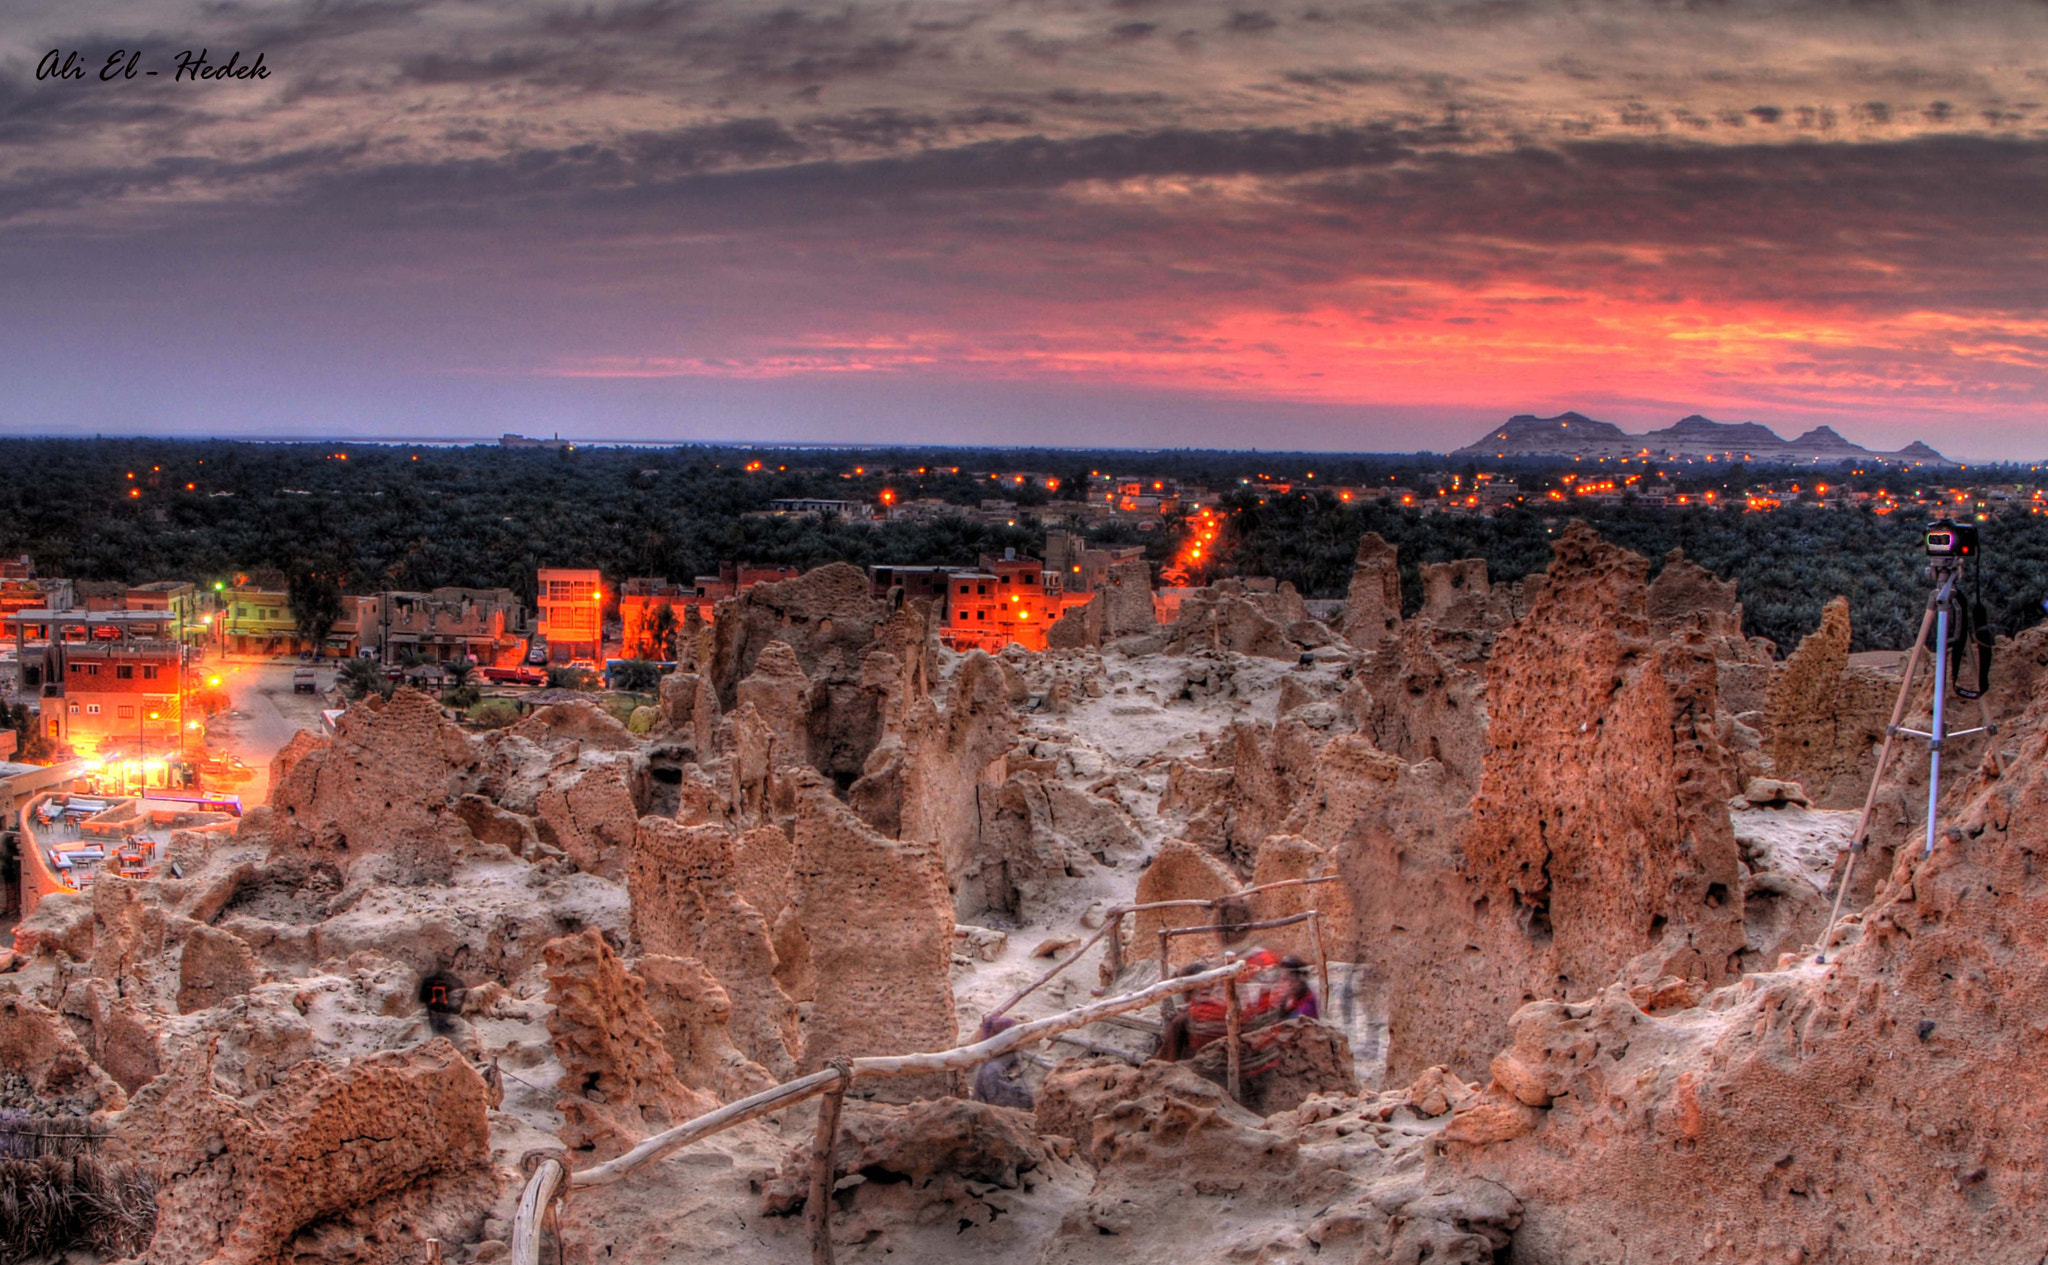 Photograph Siwa at Sunrise by Ali El Hedek on 500px